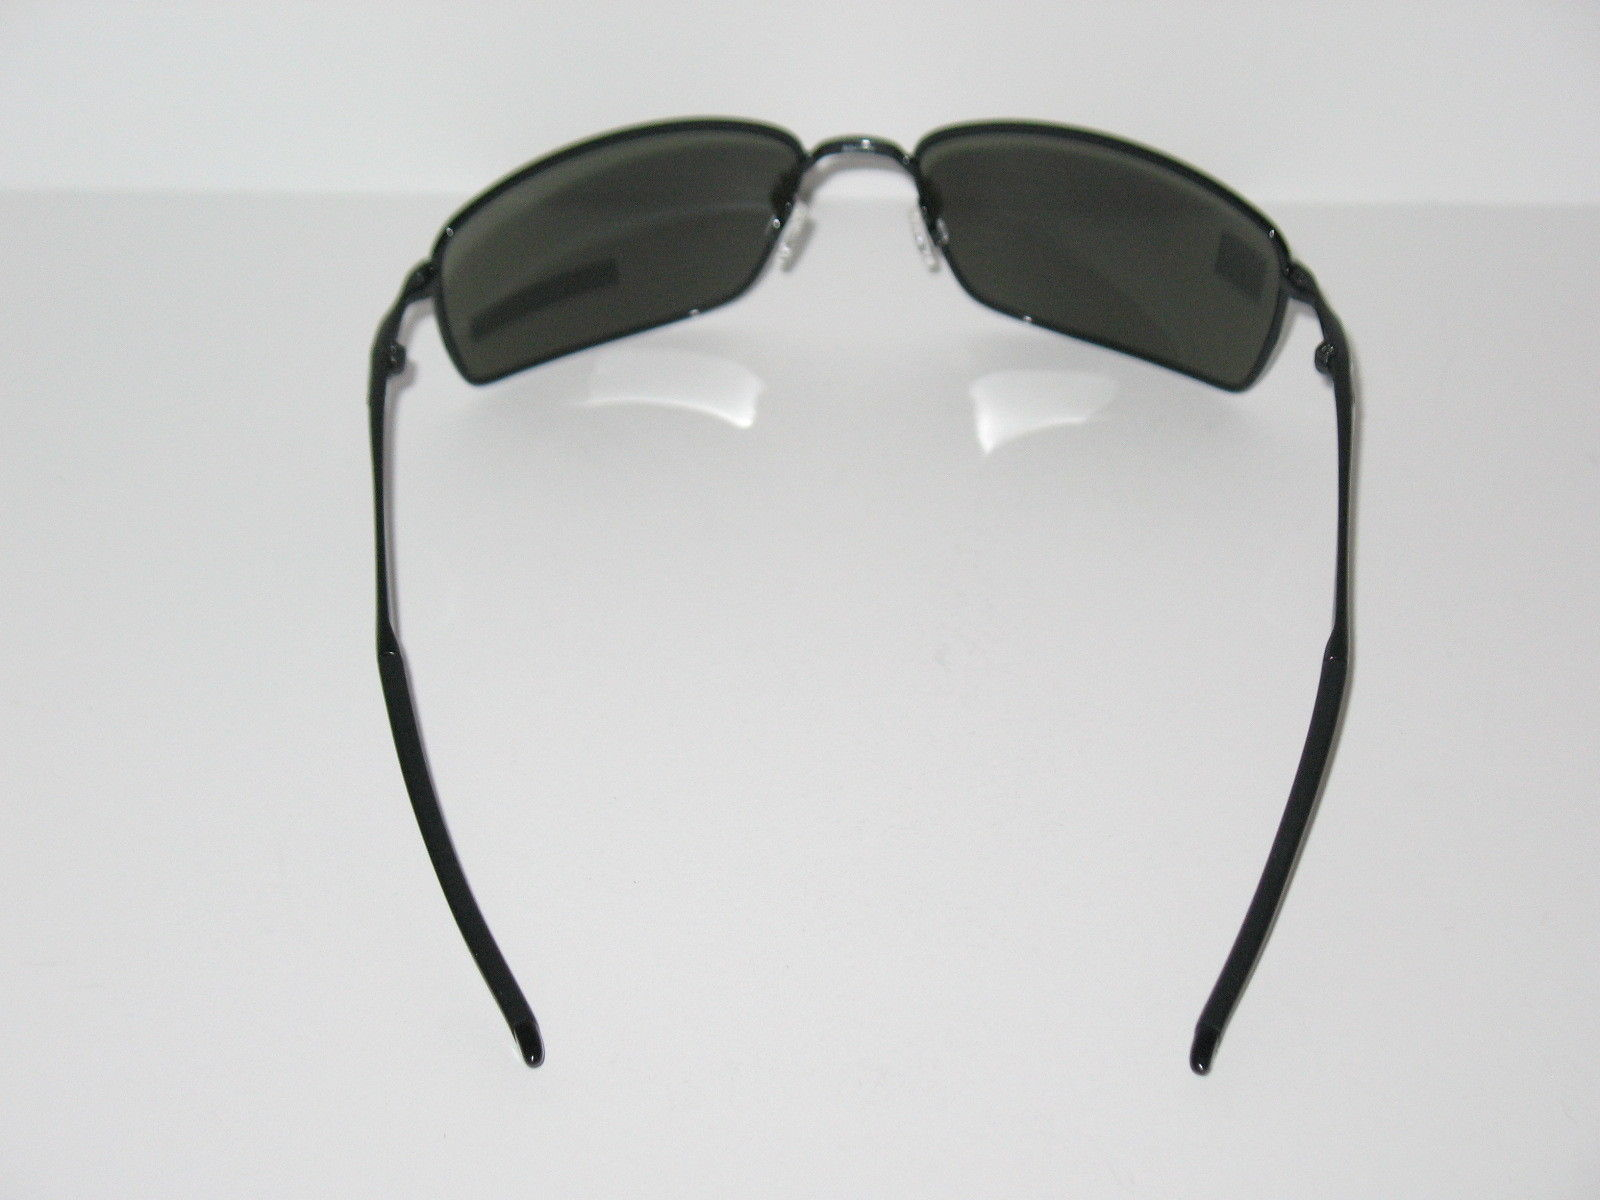 ad42df6c5a Oakley Square Wire Sunglasses OO4075-1360 and 22 similar items